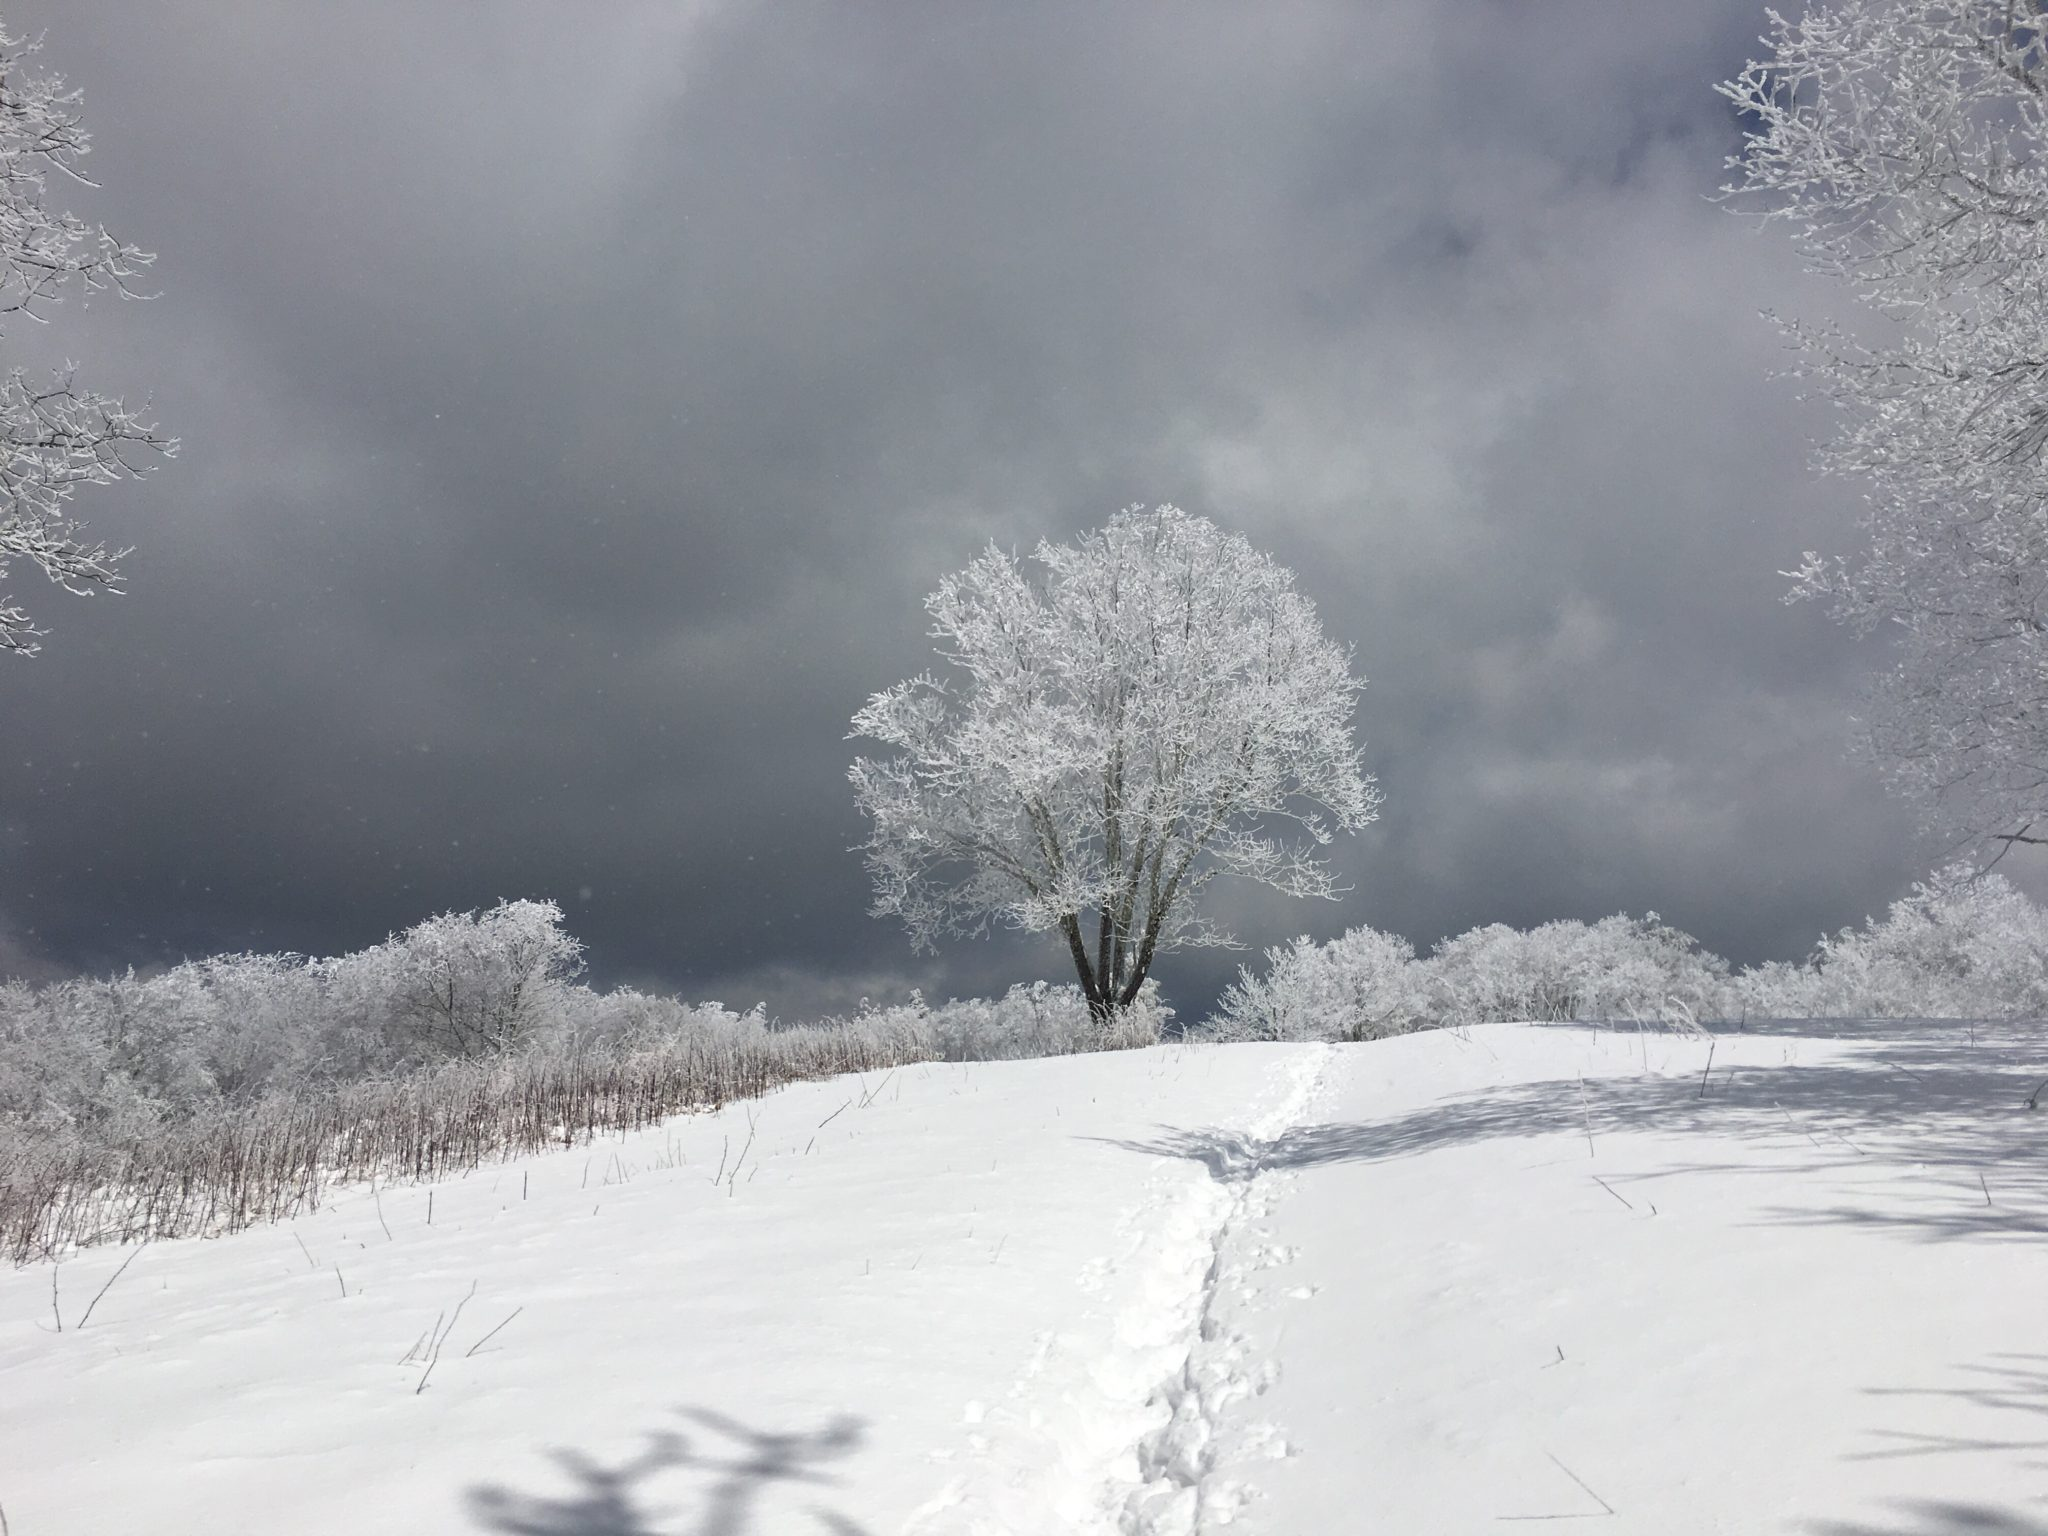 Beauty emerges from the snowstorm